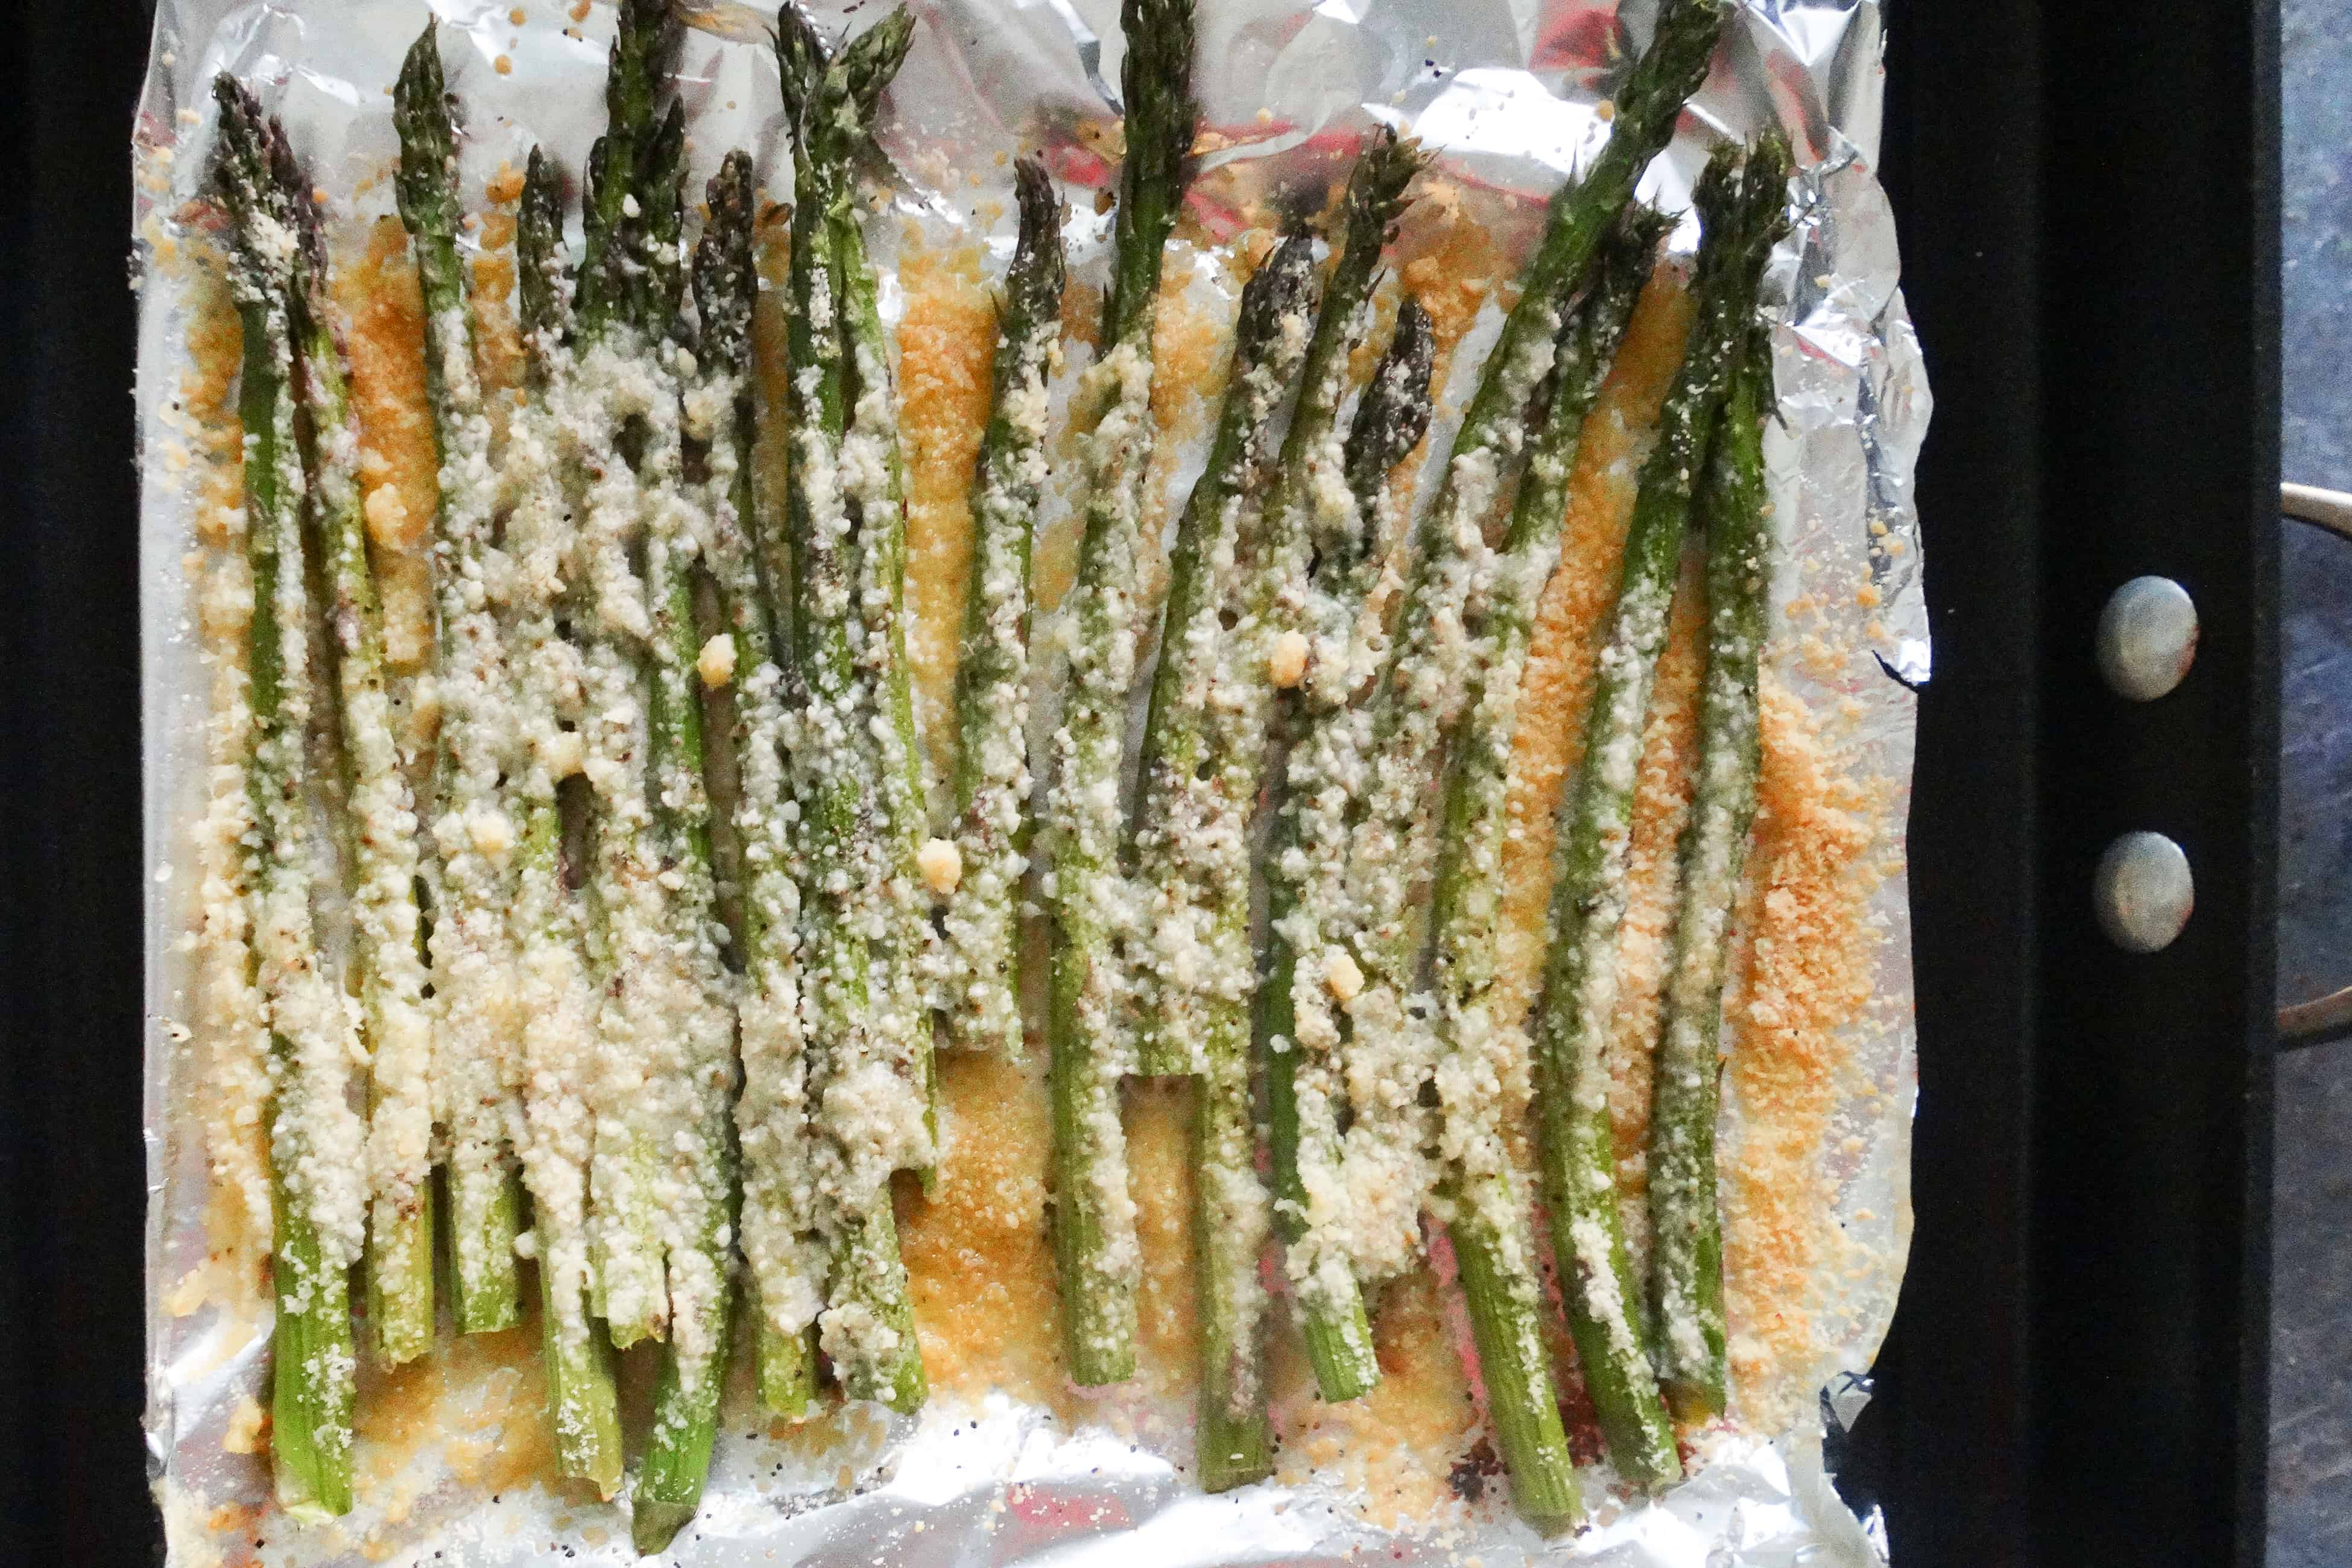 parmesan-roasted asparagus on foil lying on a frying pan